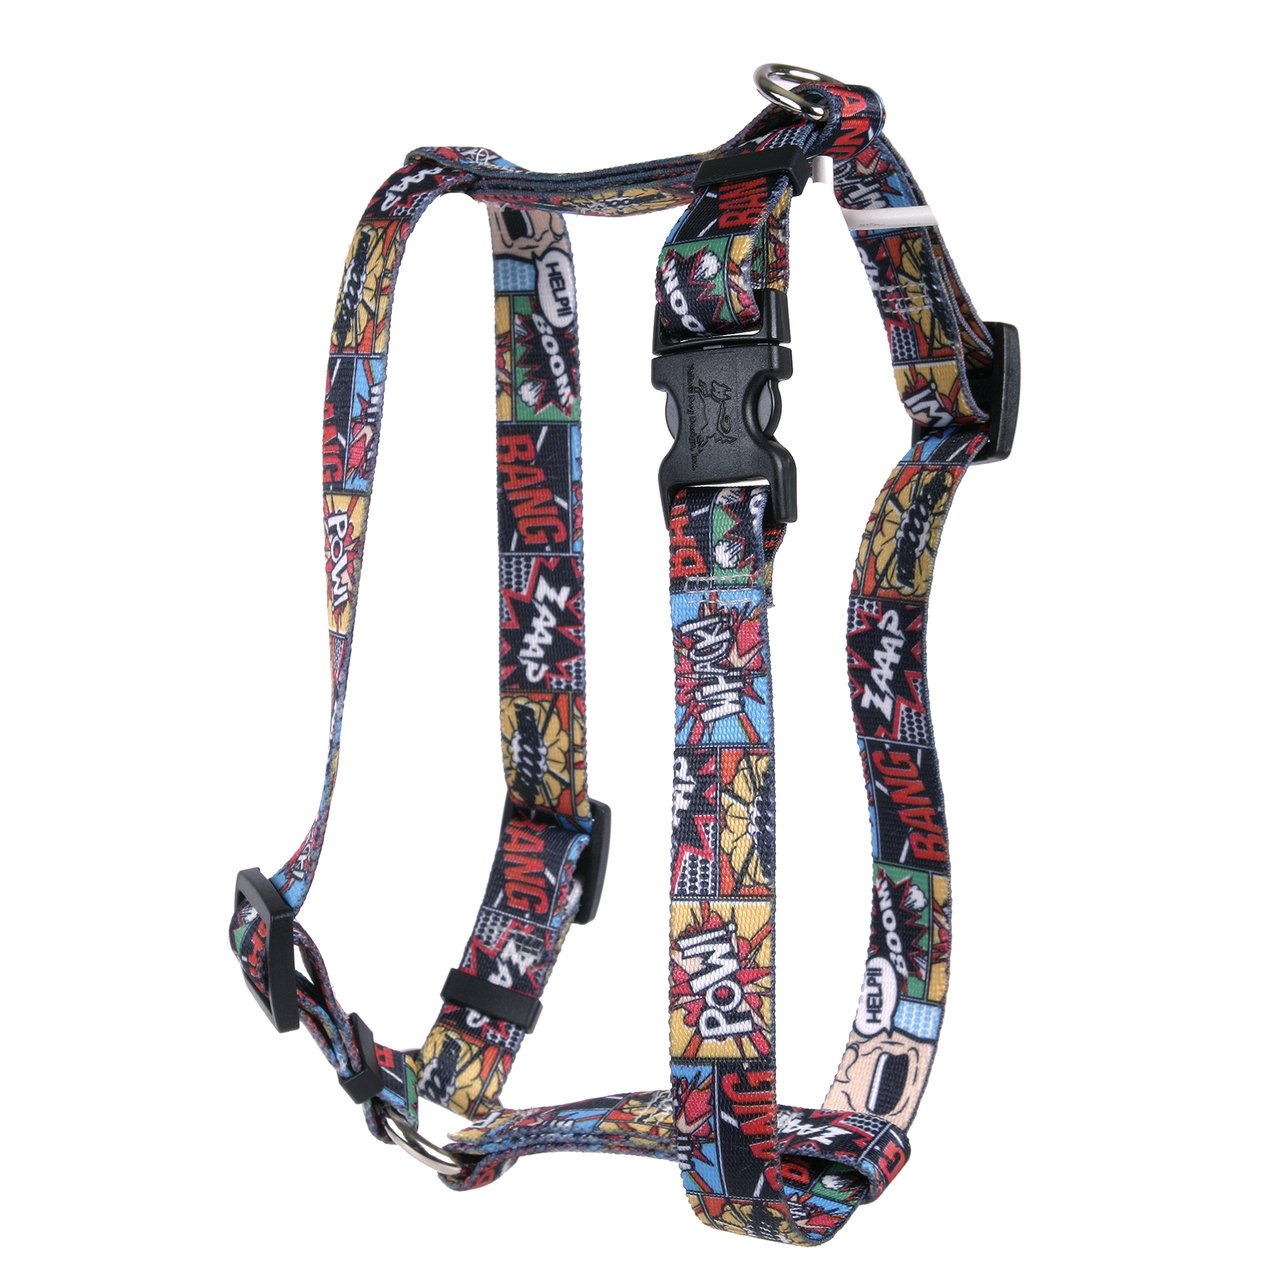 Yellow Dog Design Vintage Comics Roman Style H Dog Harness-X-Small-3/8 and fits Chest 8 to 14'' by Yellow Dog Design (Image #1)